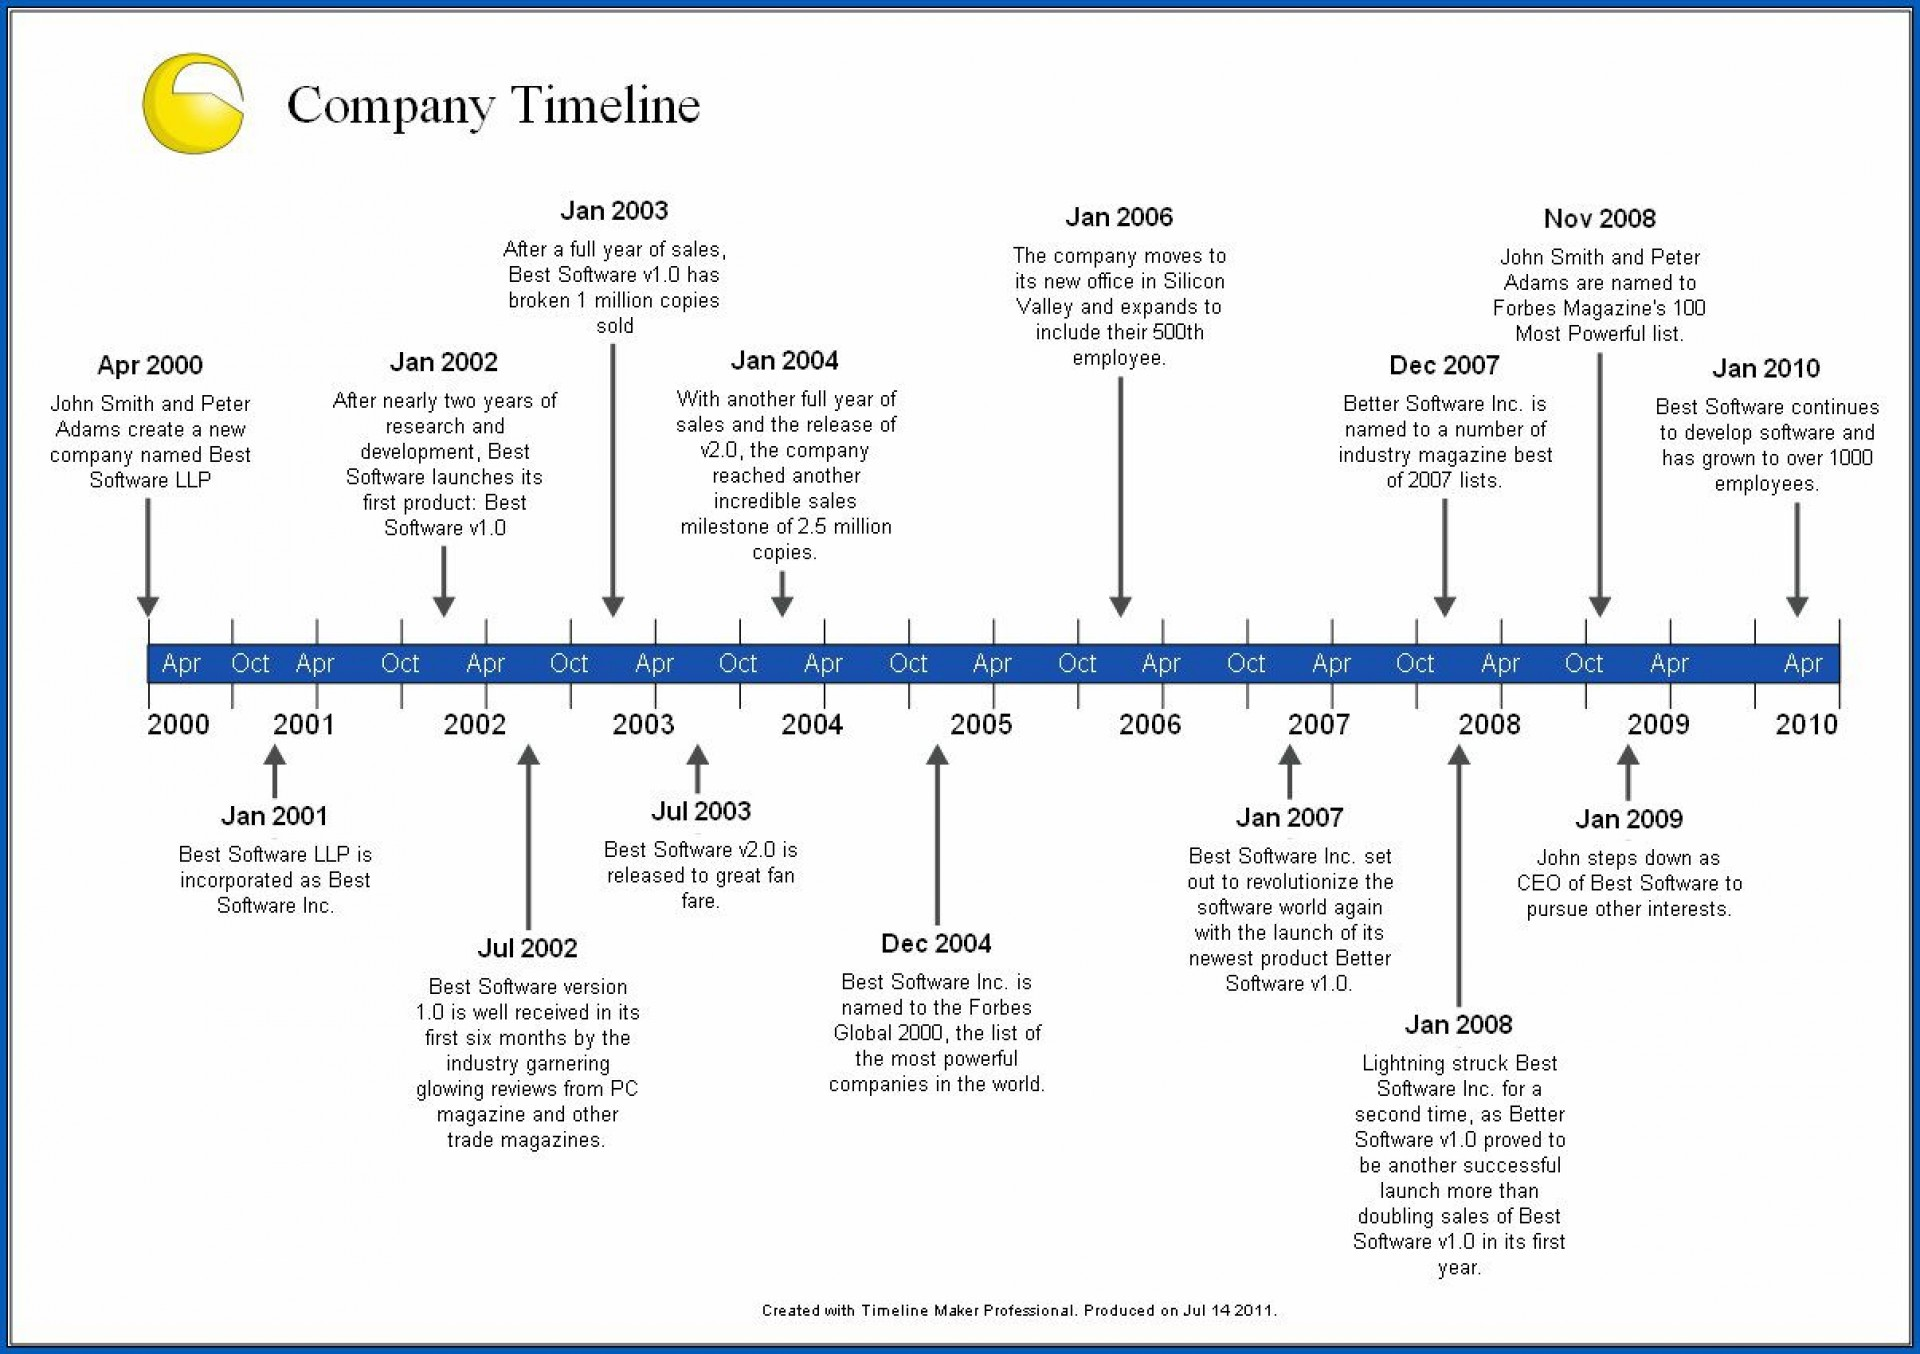 003 Unforgettable Timeline Template In Word Highest Clarity  2010 Wordpres Free1920